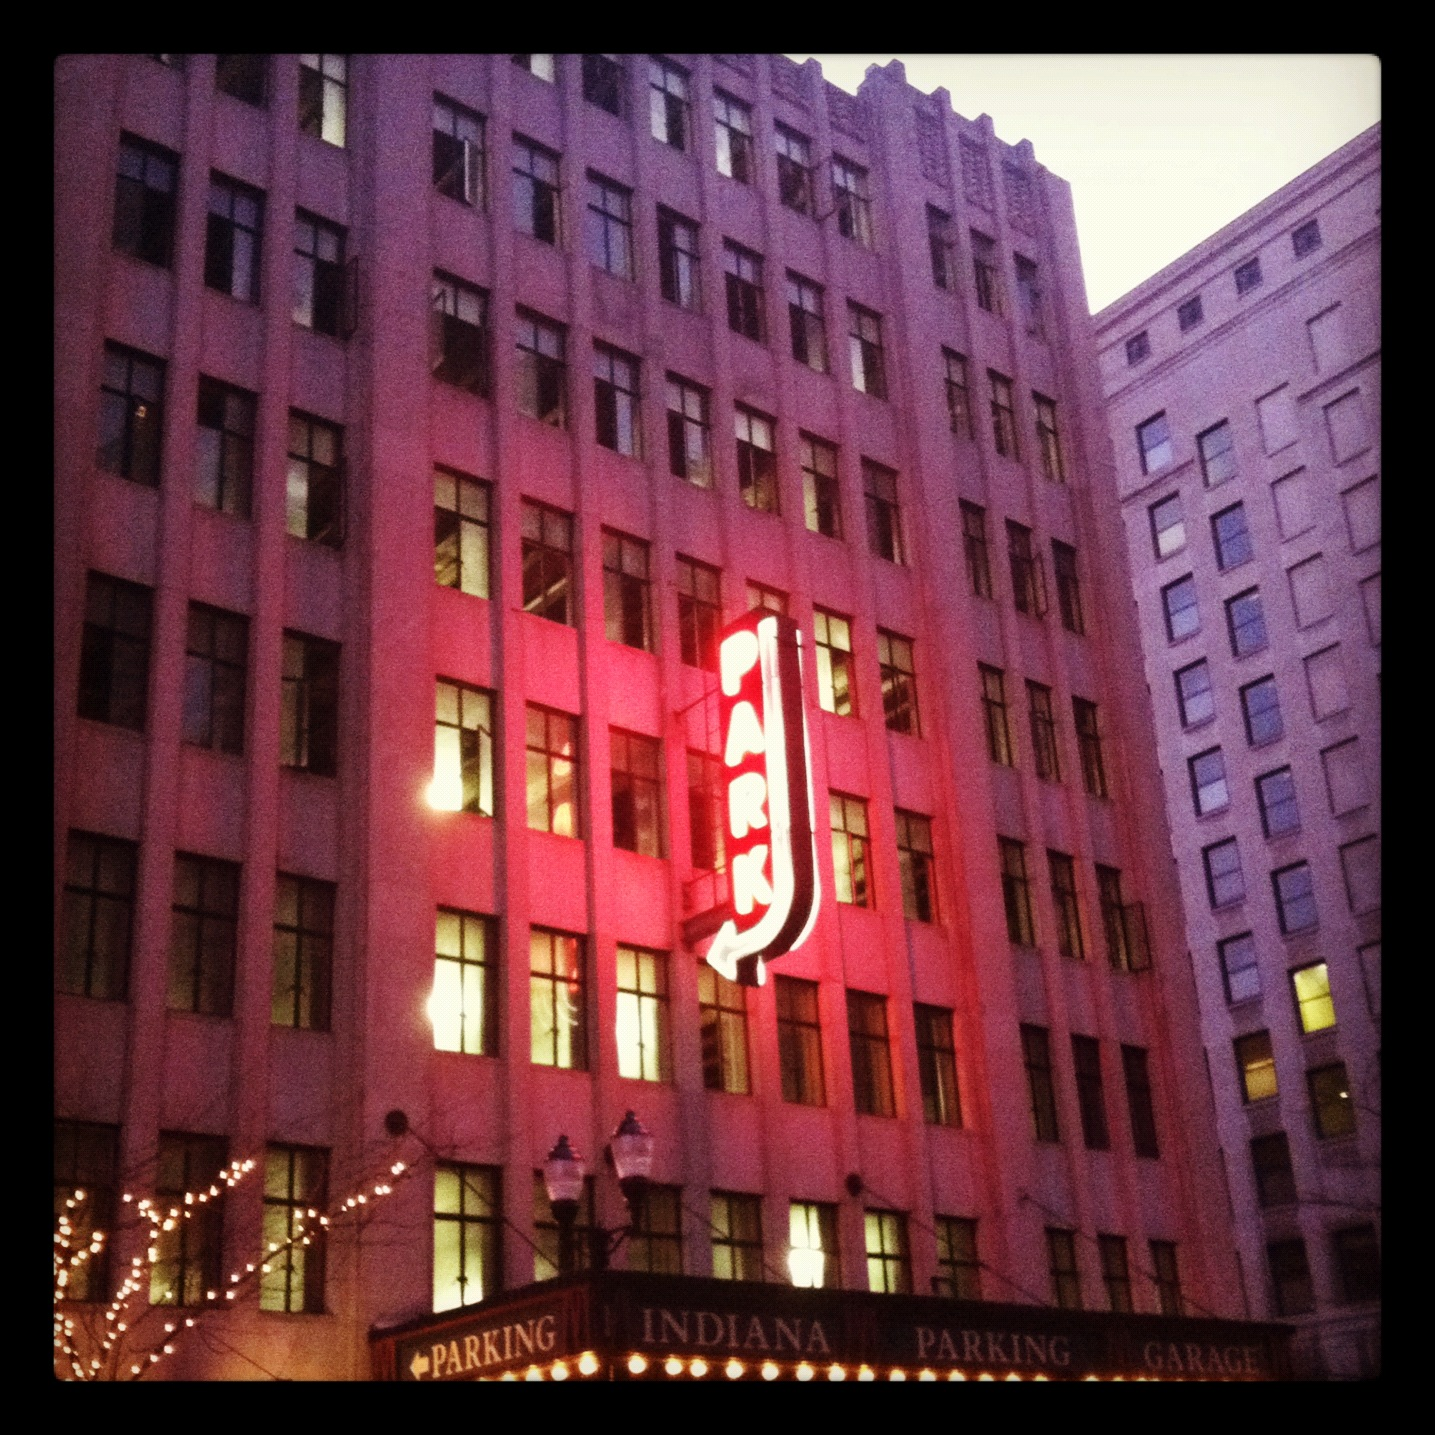 Friday Favorite: Park it Like It's Hot